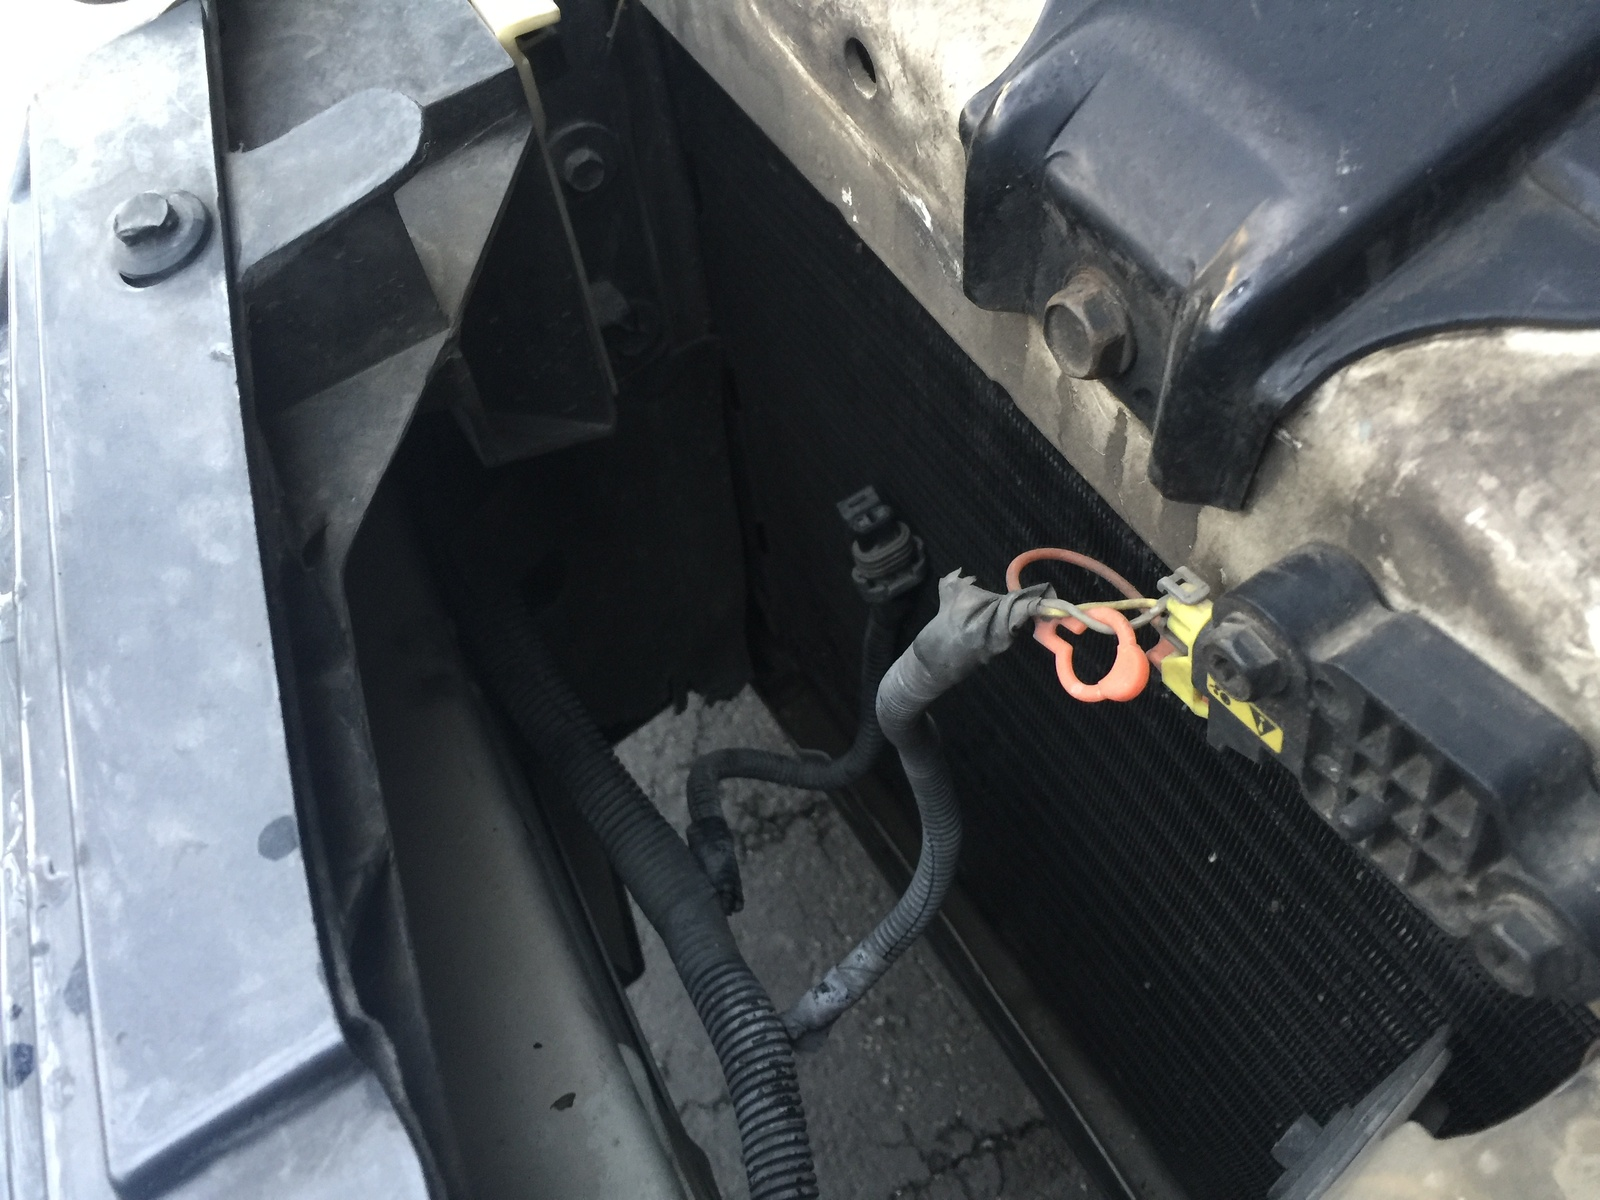 hight resolution of it s connected to the same harness as the connector for the airbag sensor i ve checked all around but have no clue where it could go